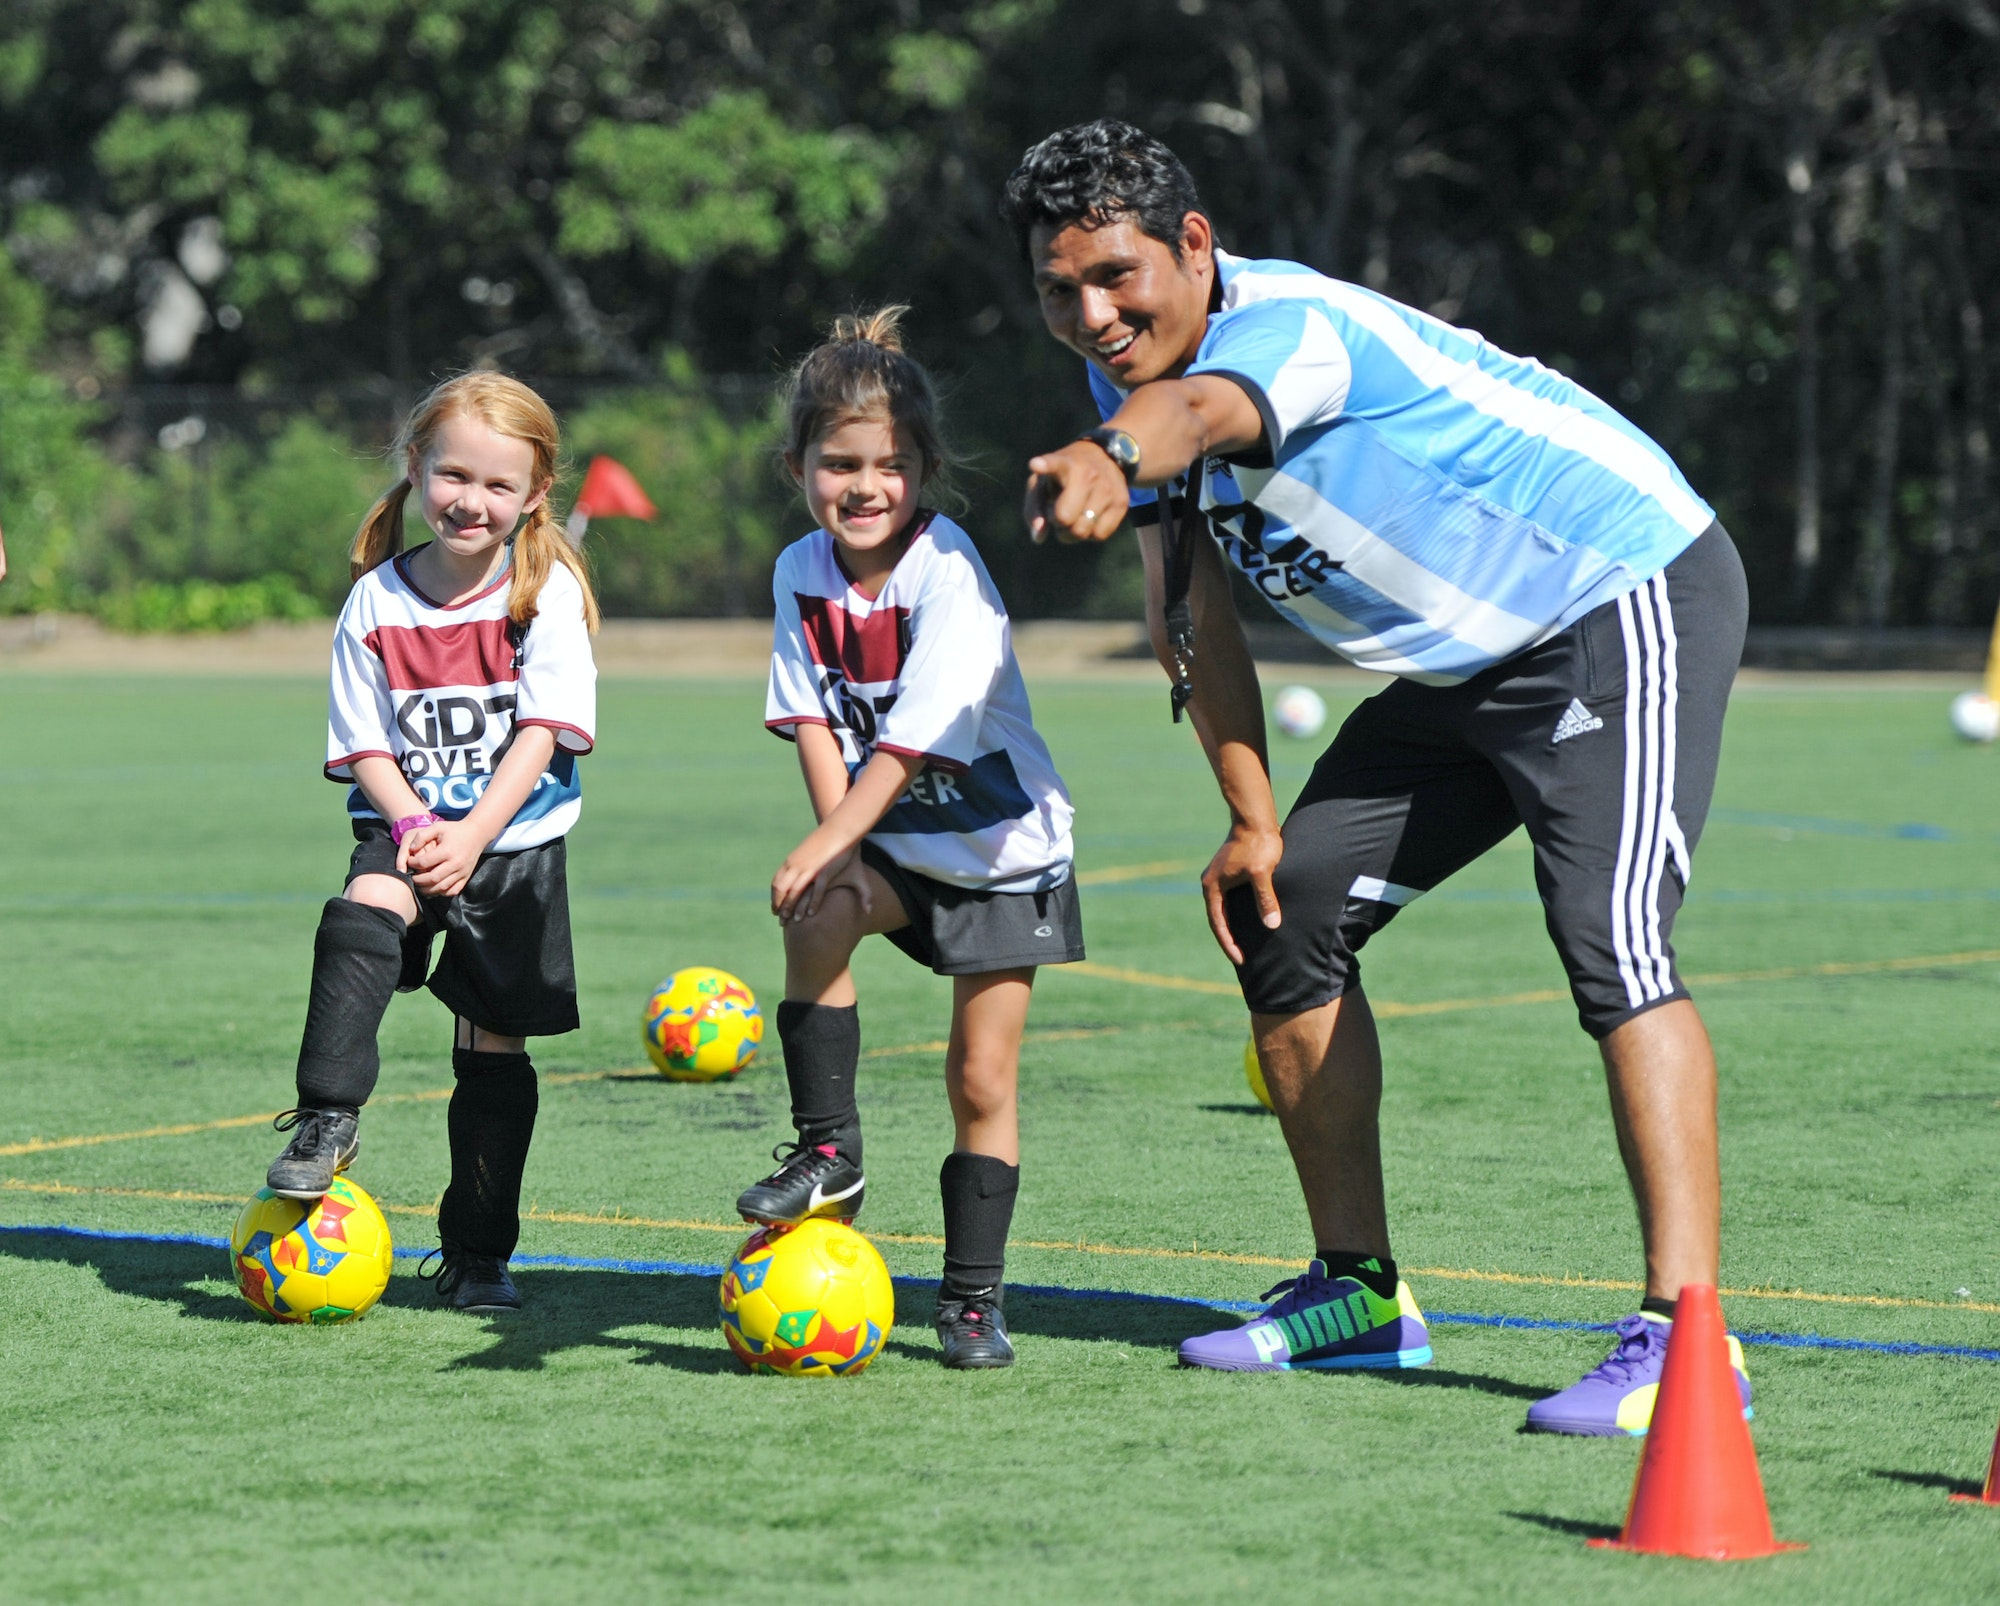 Kidz Love Soccer: Two girl soccer players with foot on balls and coach leaning over and pointing something out to them.